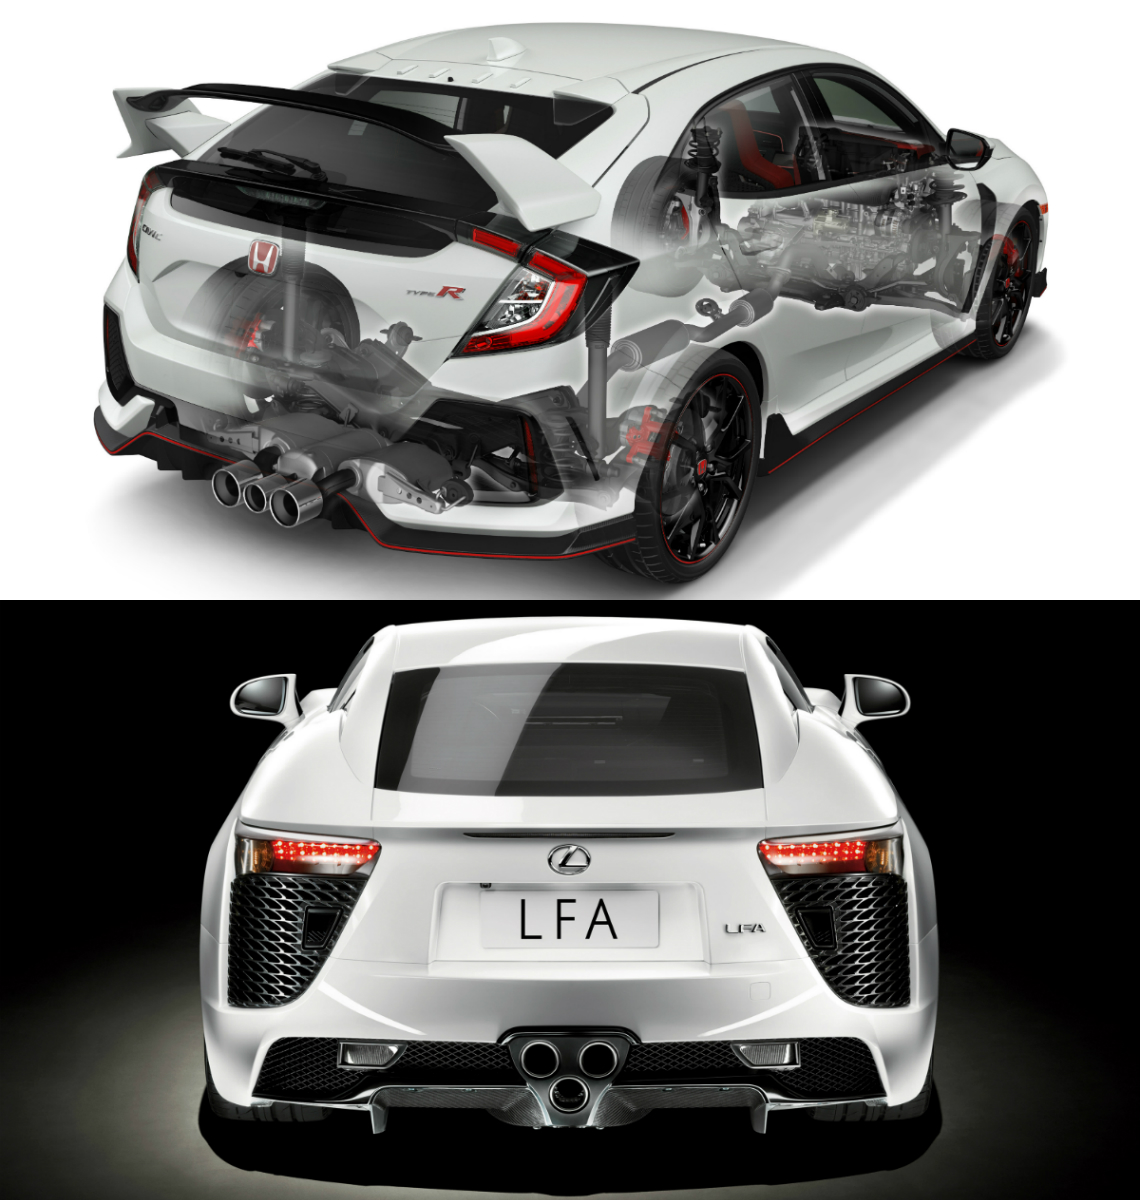 the triple-tailpipe exhaust systems of honda's fk8 civic type r hot hatch  and lexus